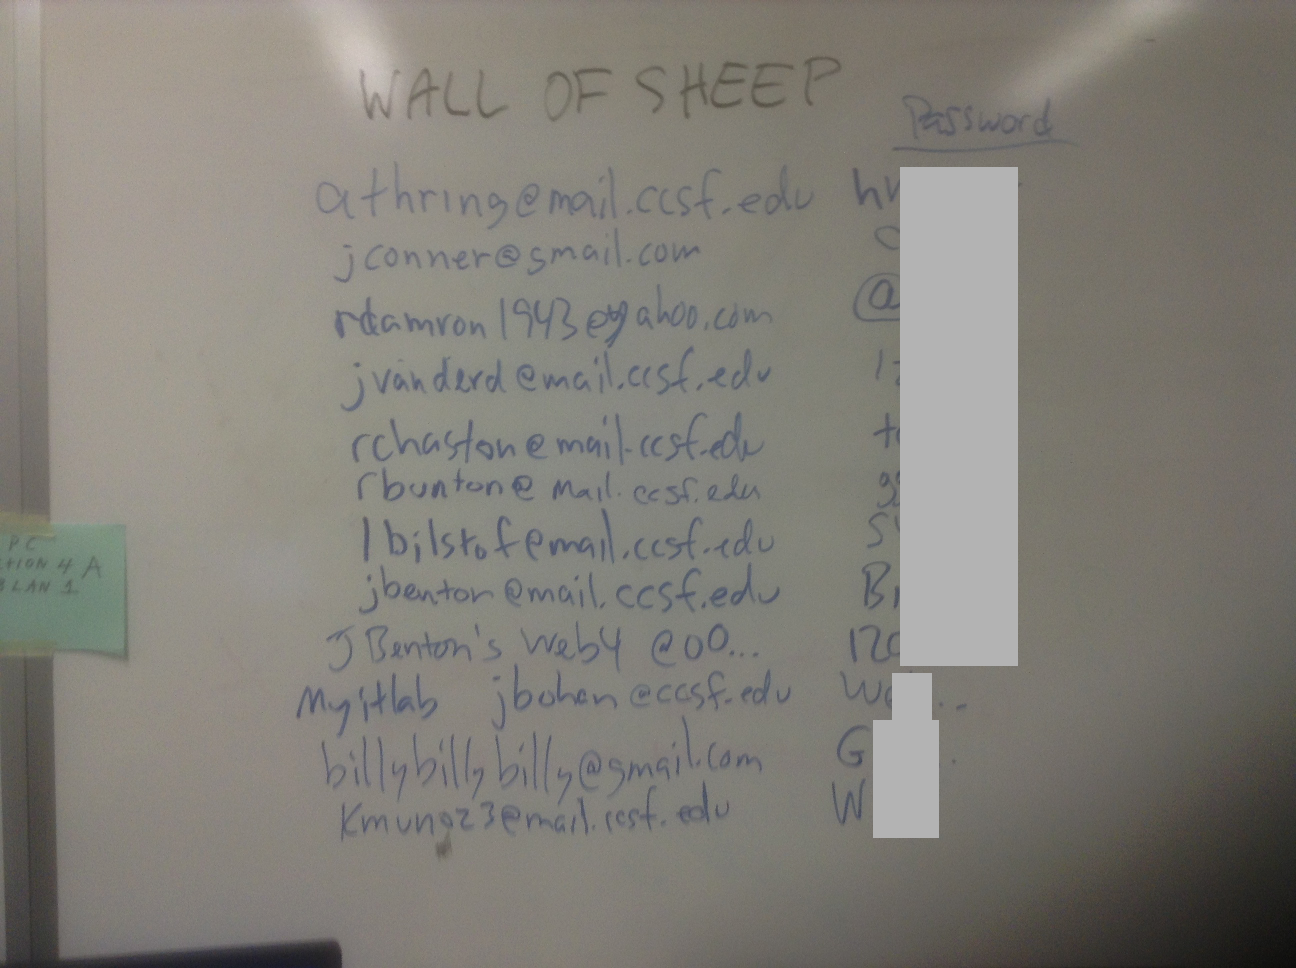 2015 11 18 Wall of Sheep in the hacking